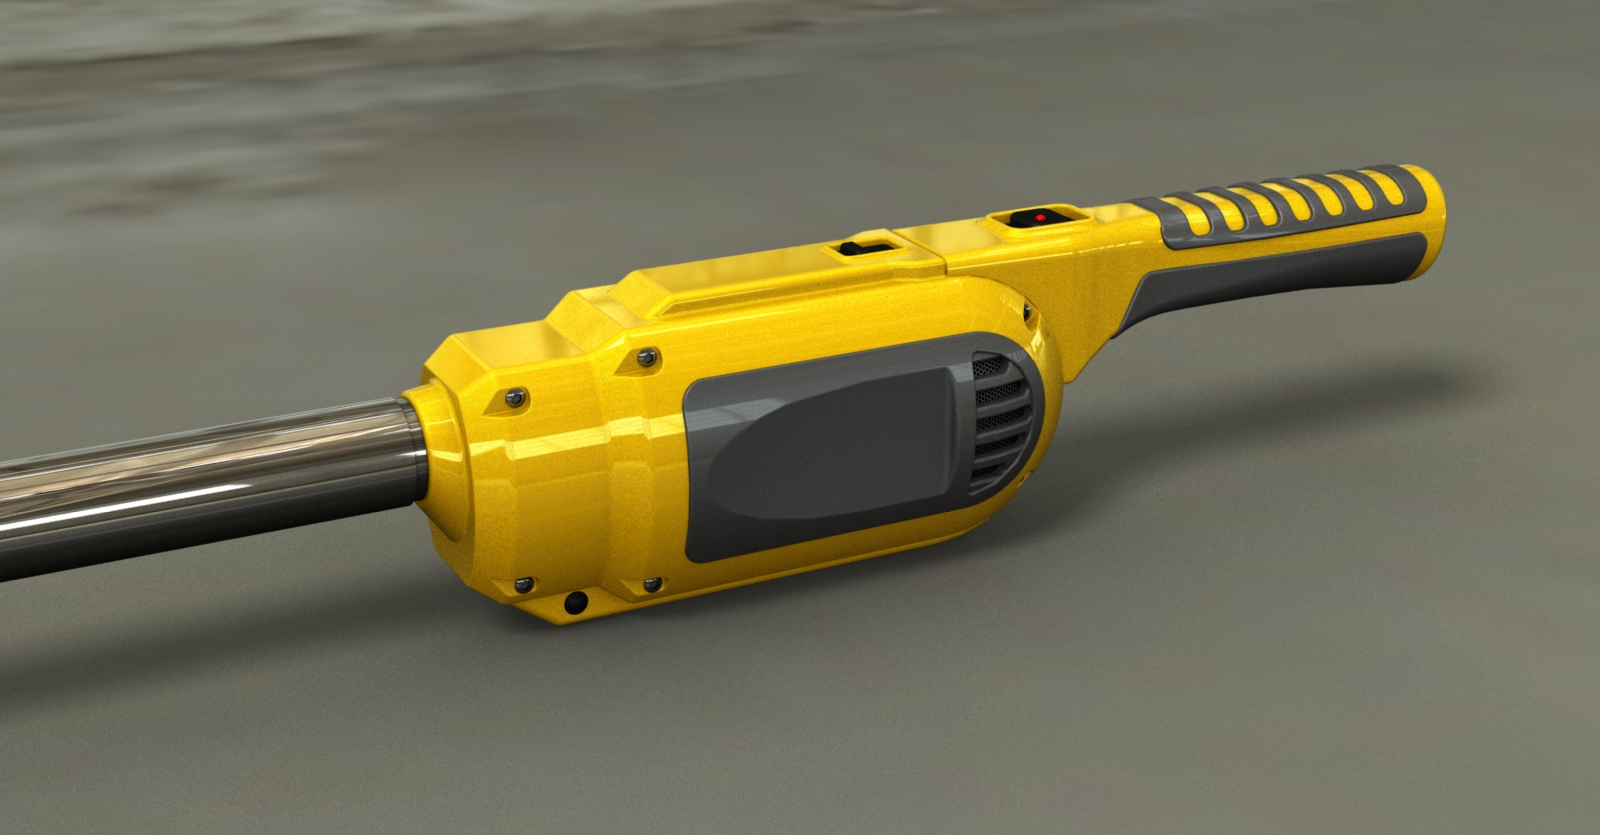 Rendering of Airlighter design - yellow